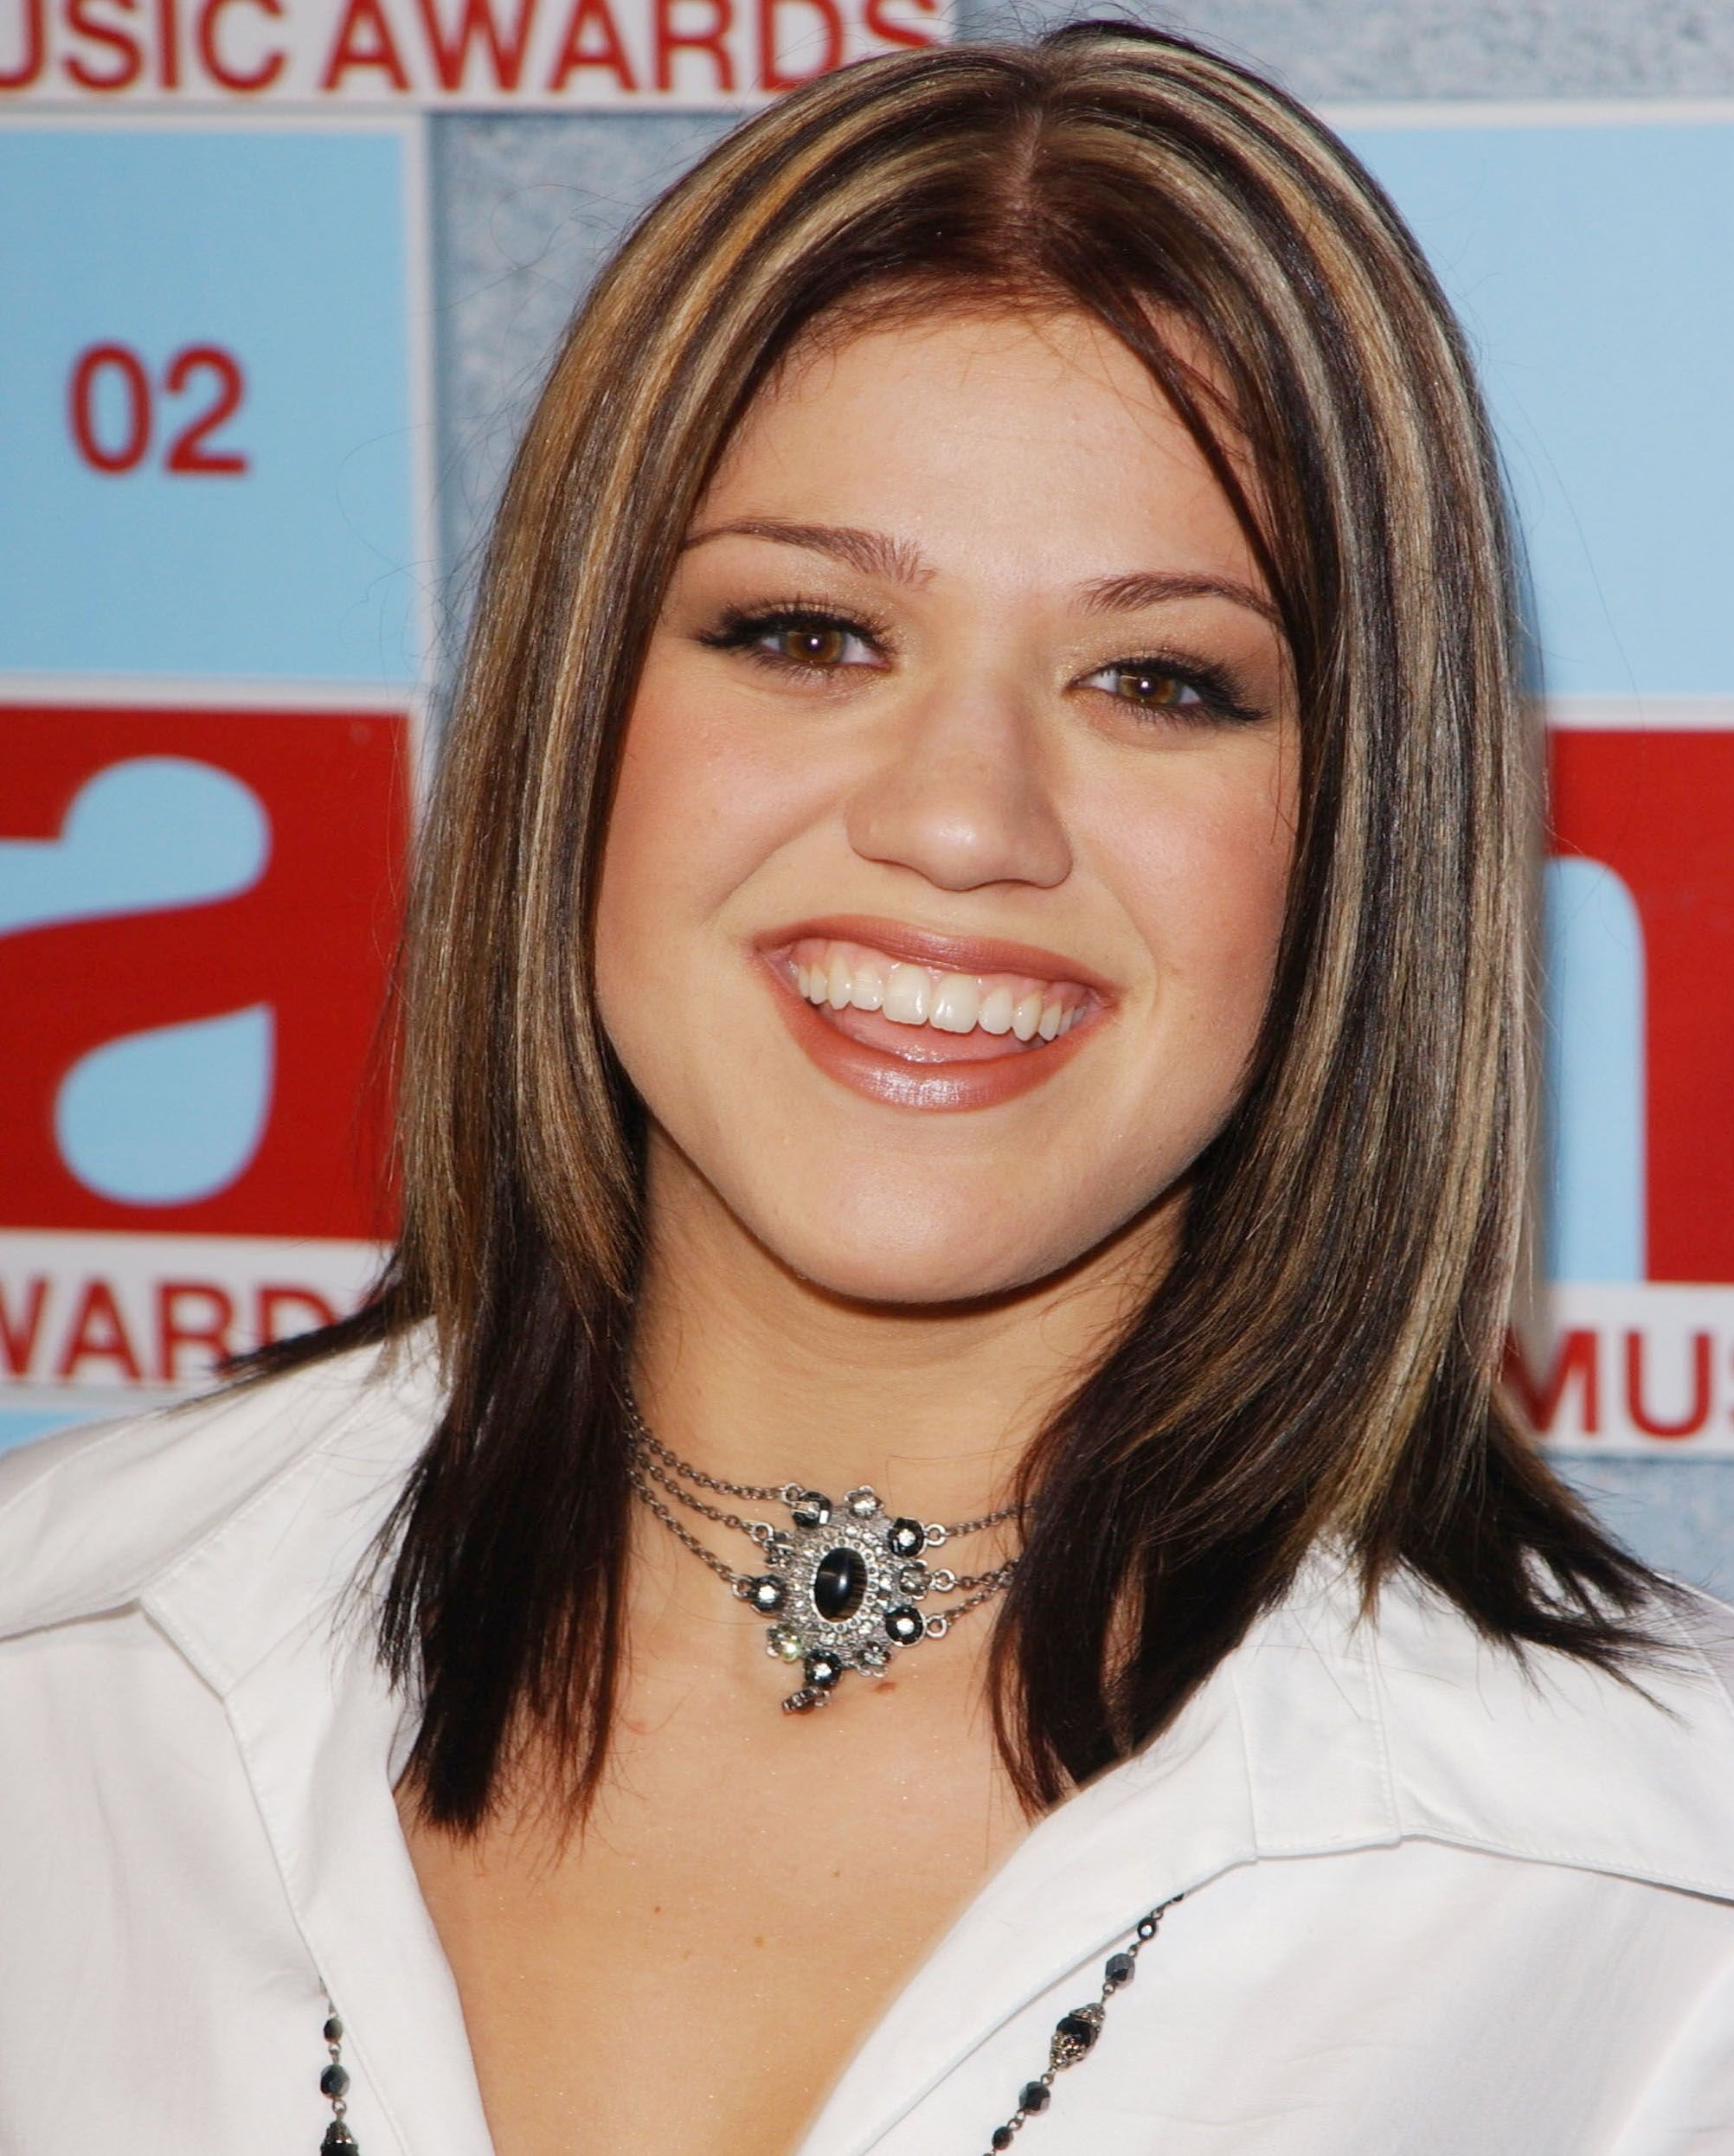 Kelly Clarkson grew up without a father by her side / Getty Images